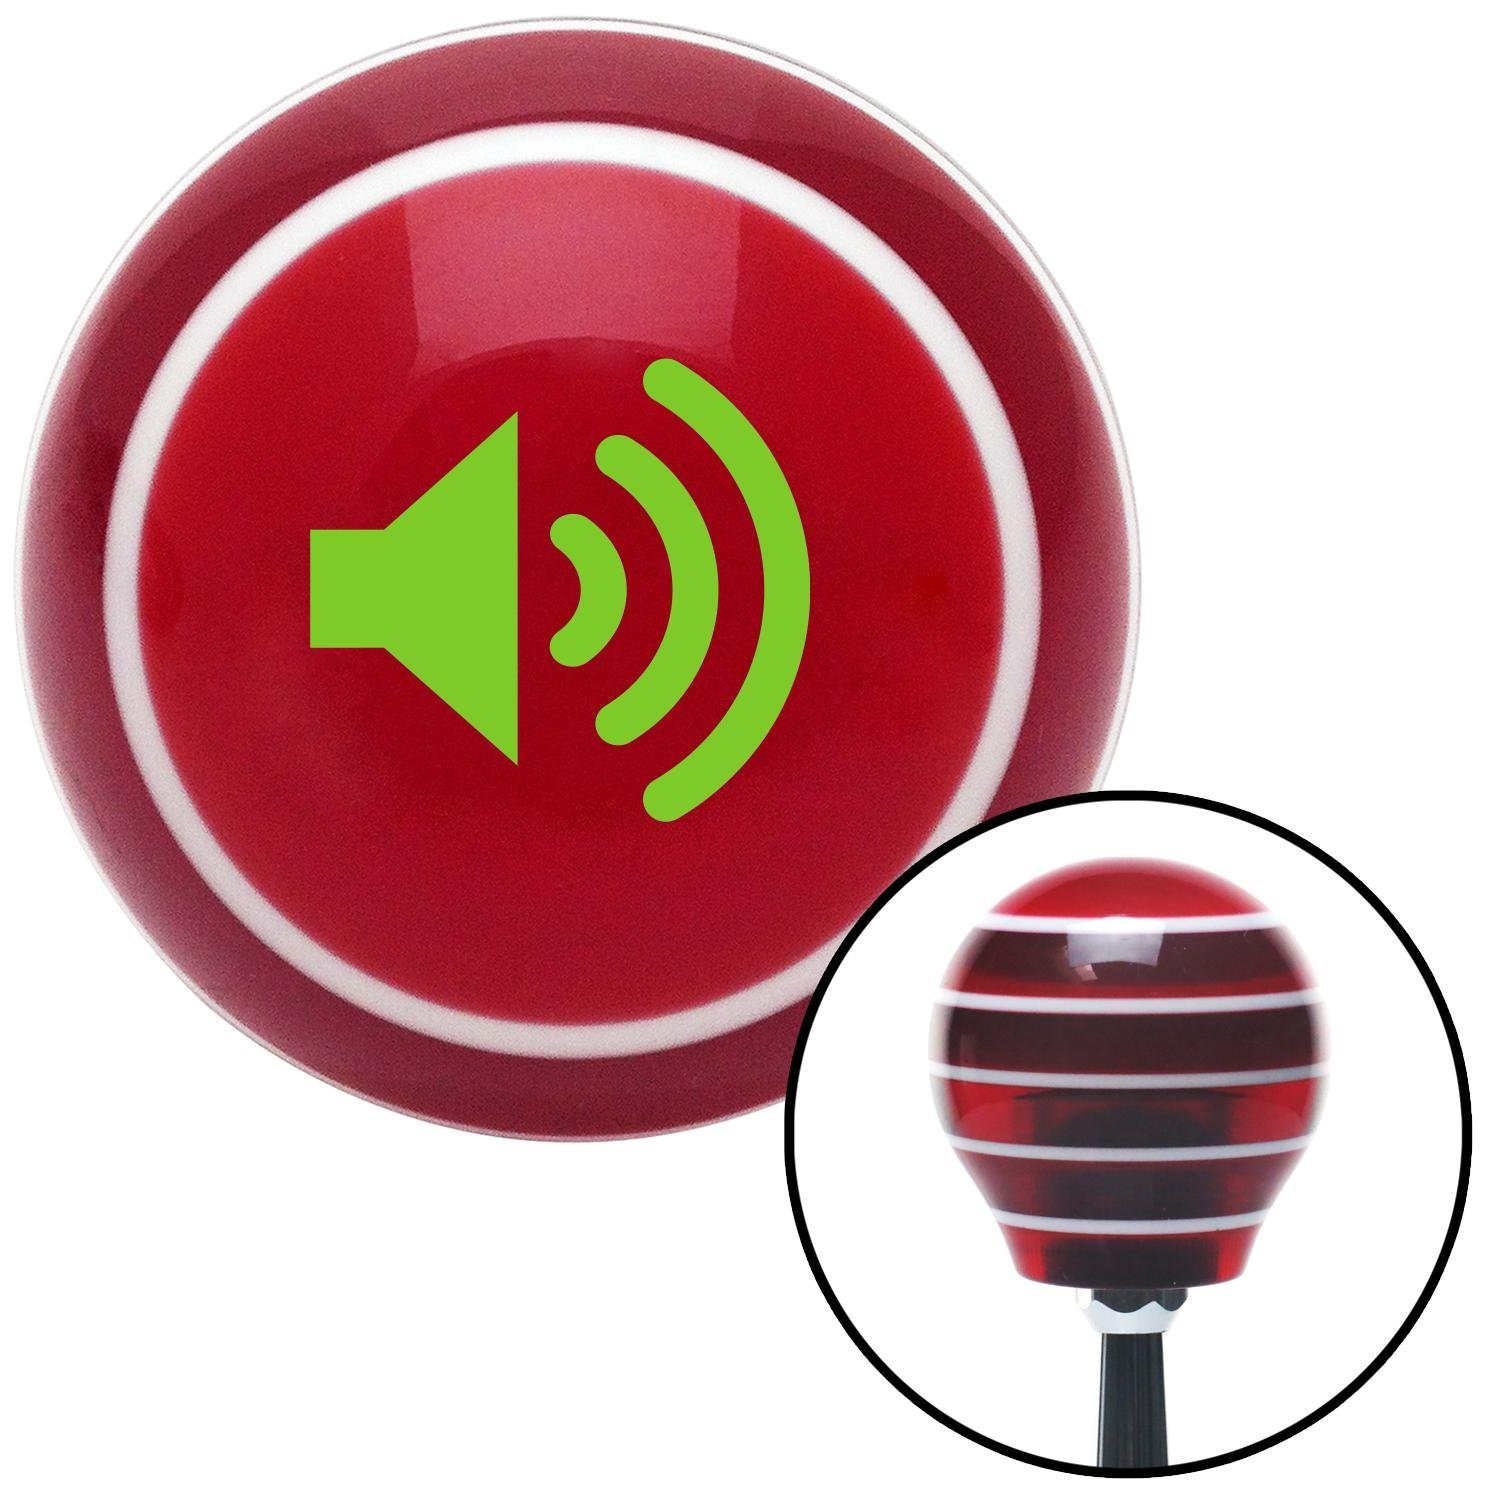 American Shifter 116200 Red Stripe Shift Knob with M16 x 1.5 Insert Green Speaker On